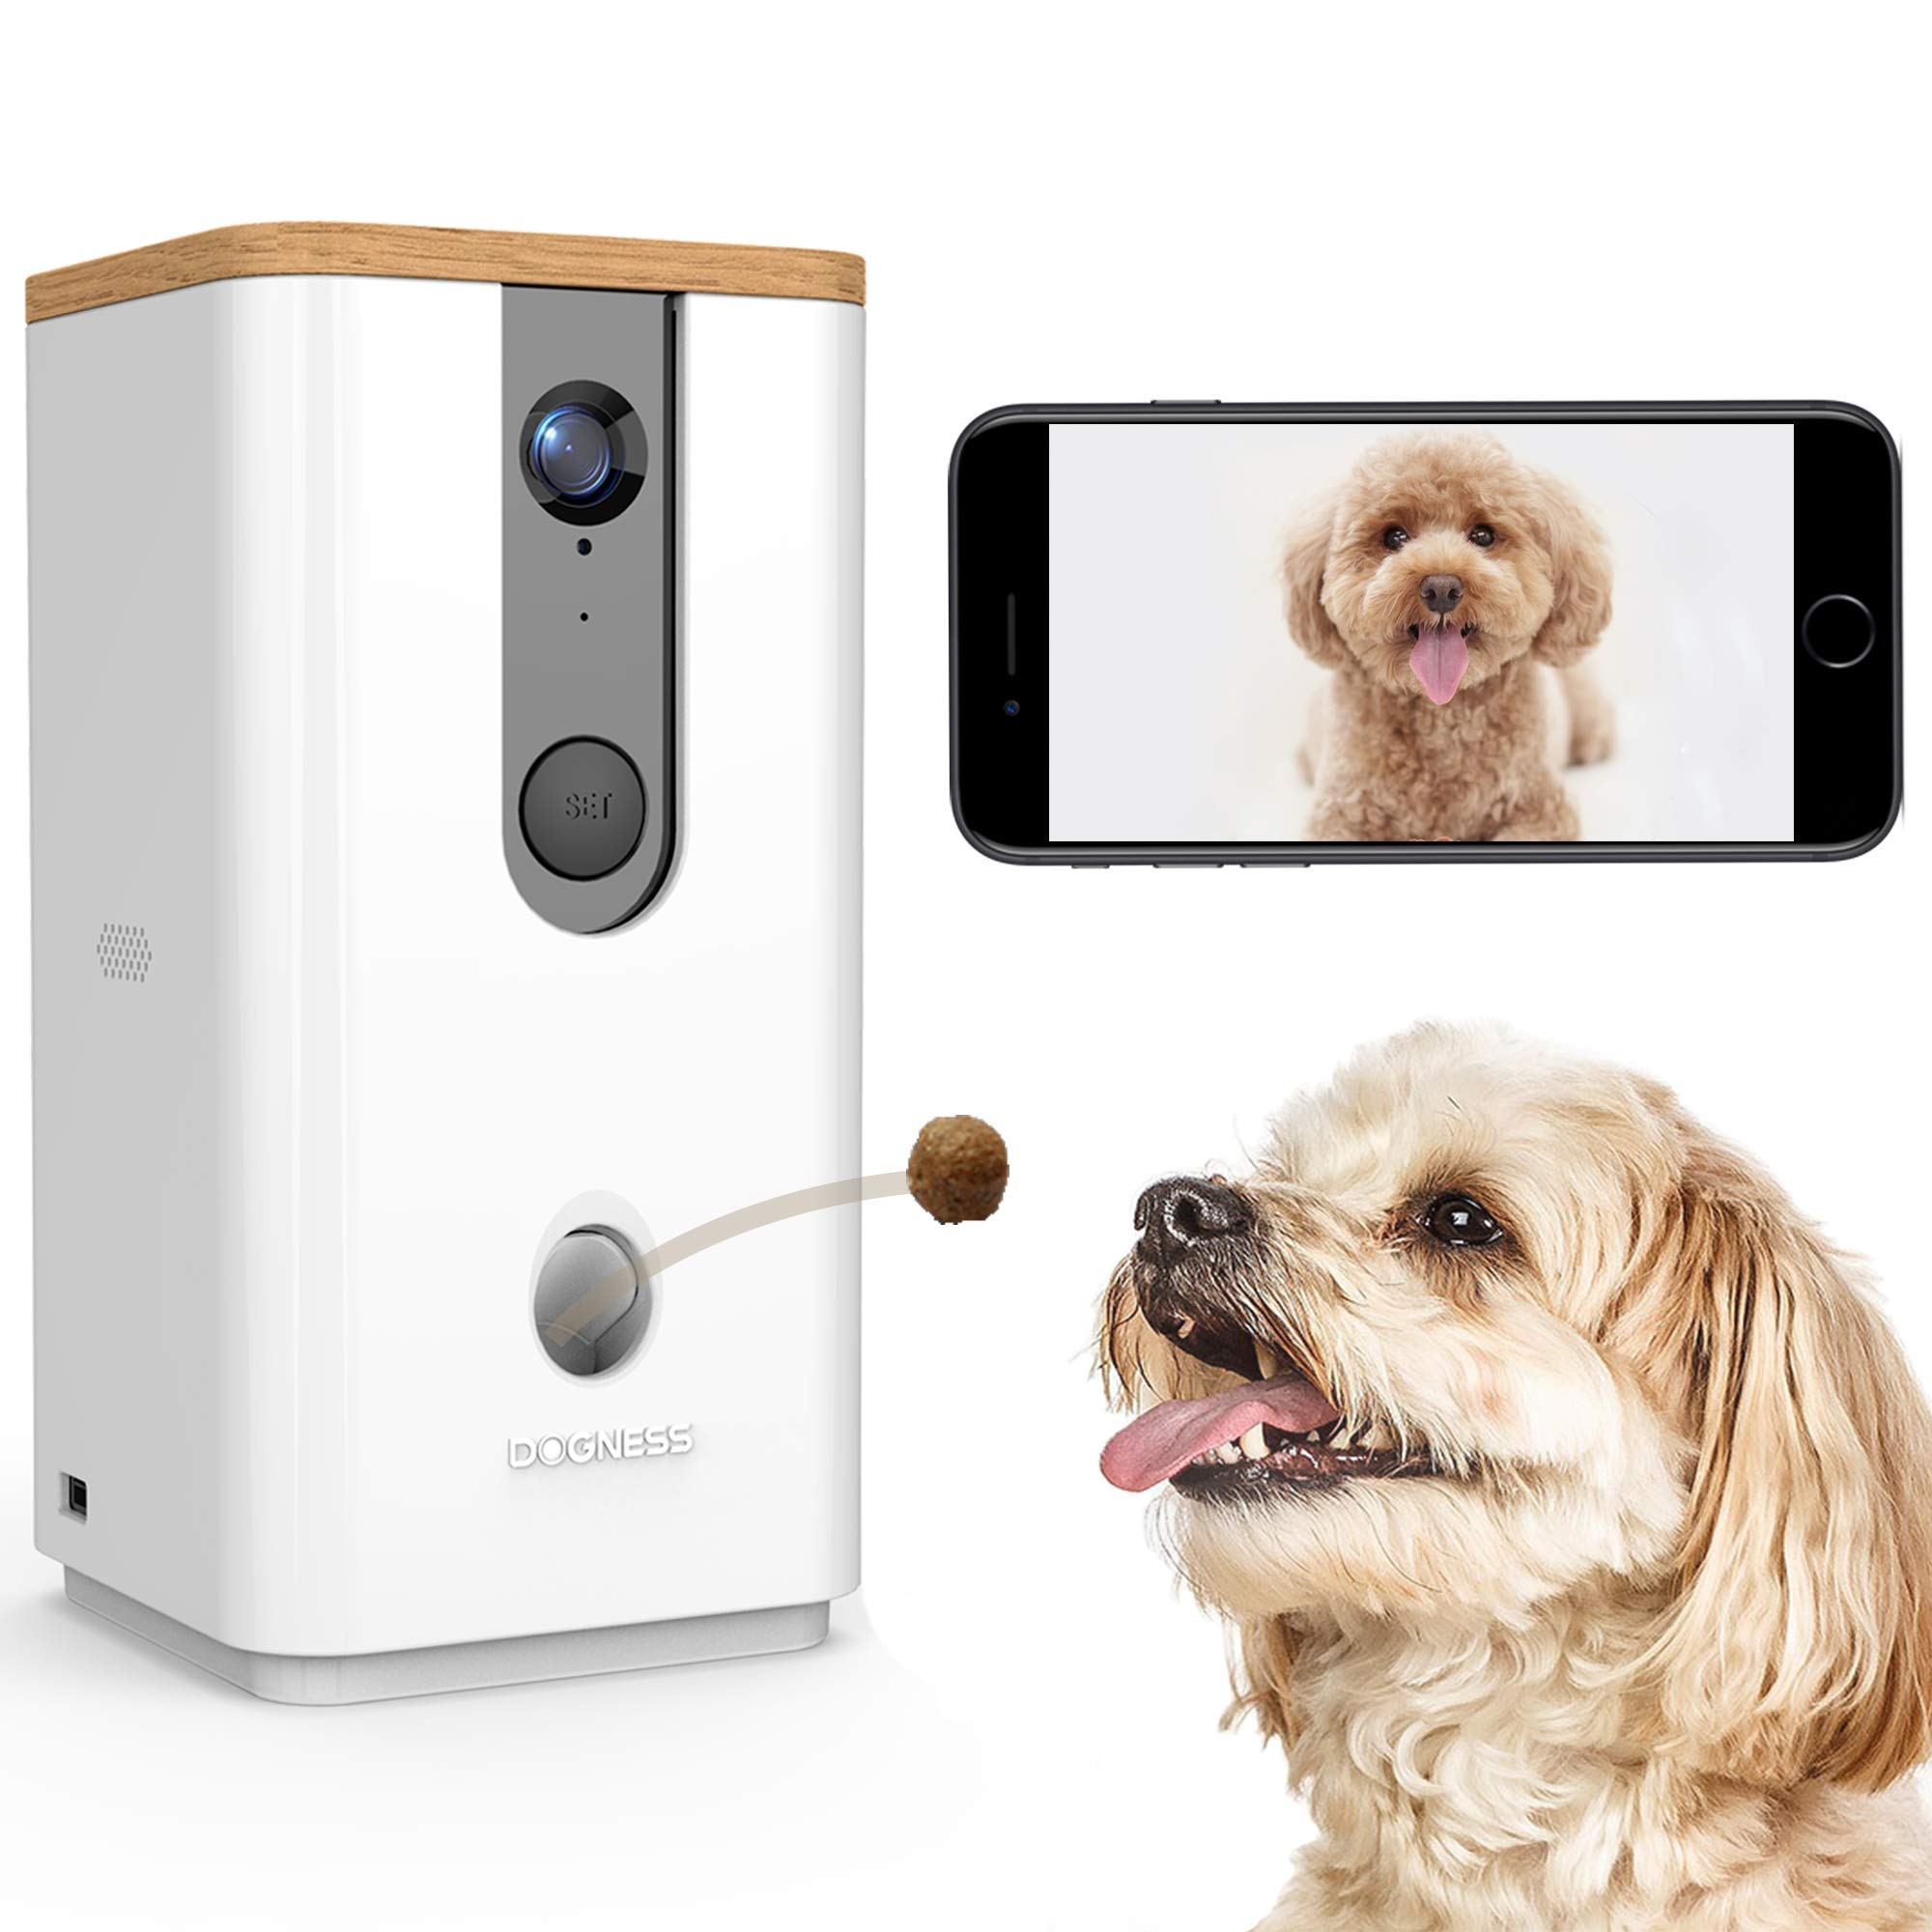 DOGNESS Dog Camera Treat Dispenser,HD Video WiFi Pet Camera with 2-Way Audio and Night Vision,Monitor Your Dogs and Cats by DOGNESS (Image #1)